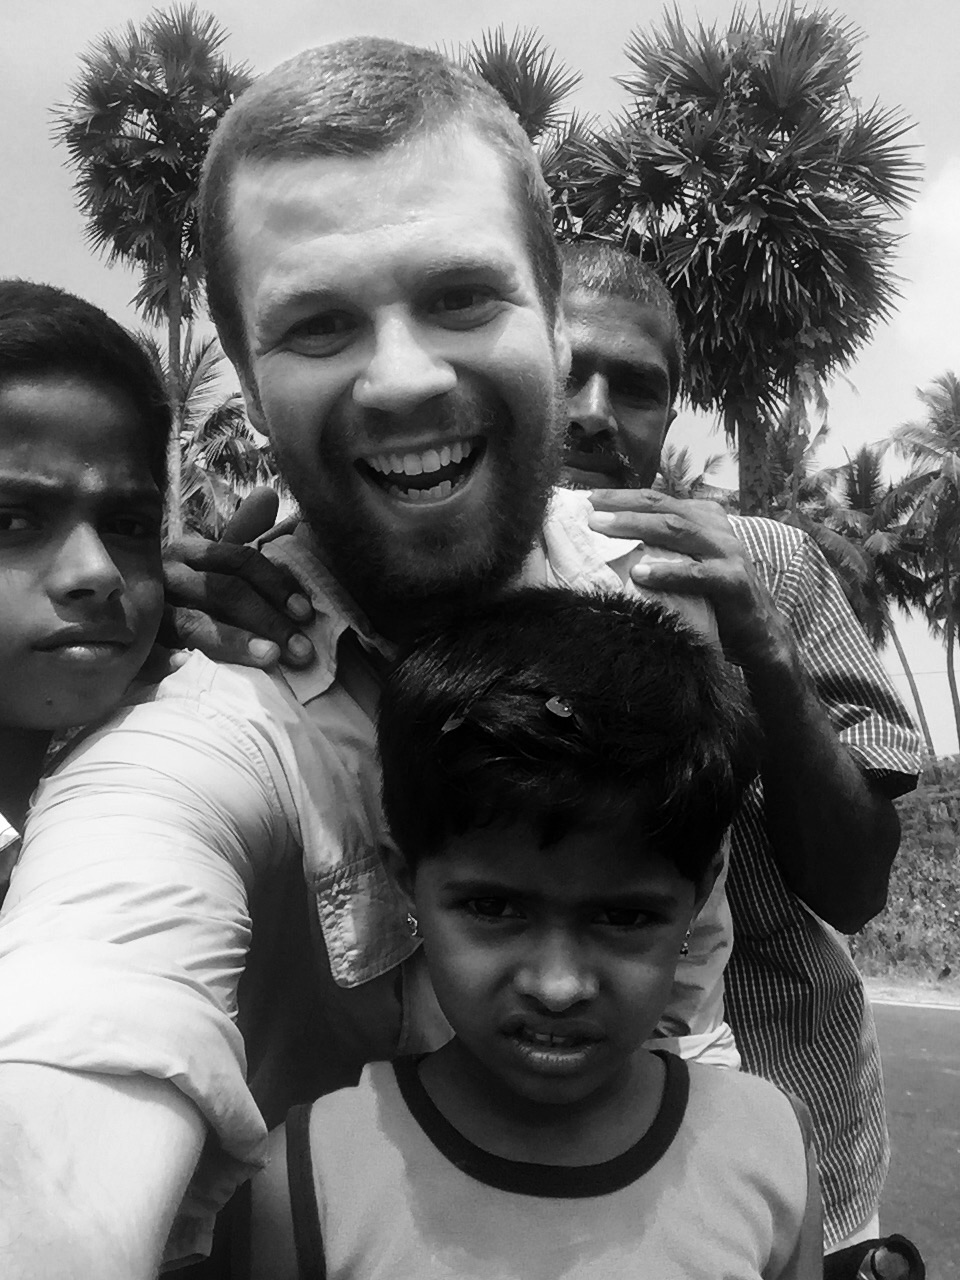 Saw me on the road and picked up his children to come back and meet me. I've never seen someone so happy. A humbling experience.